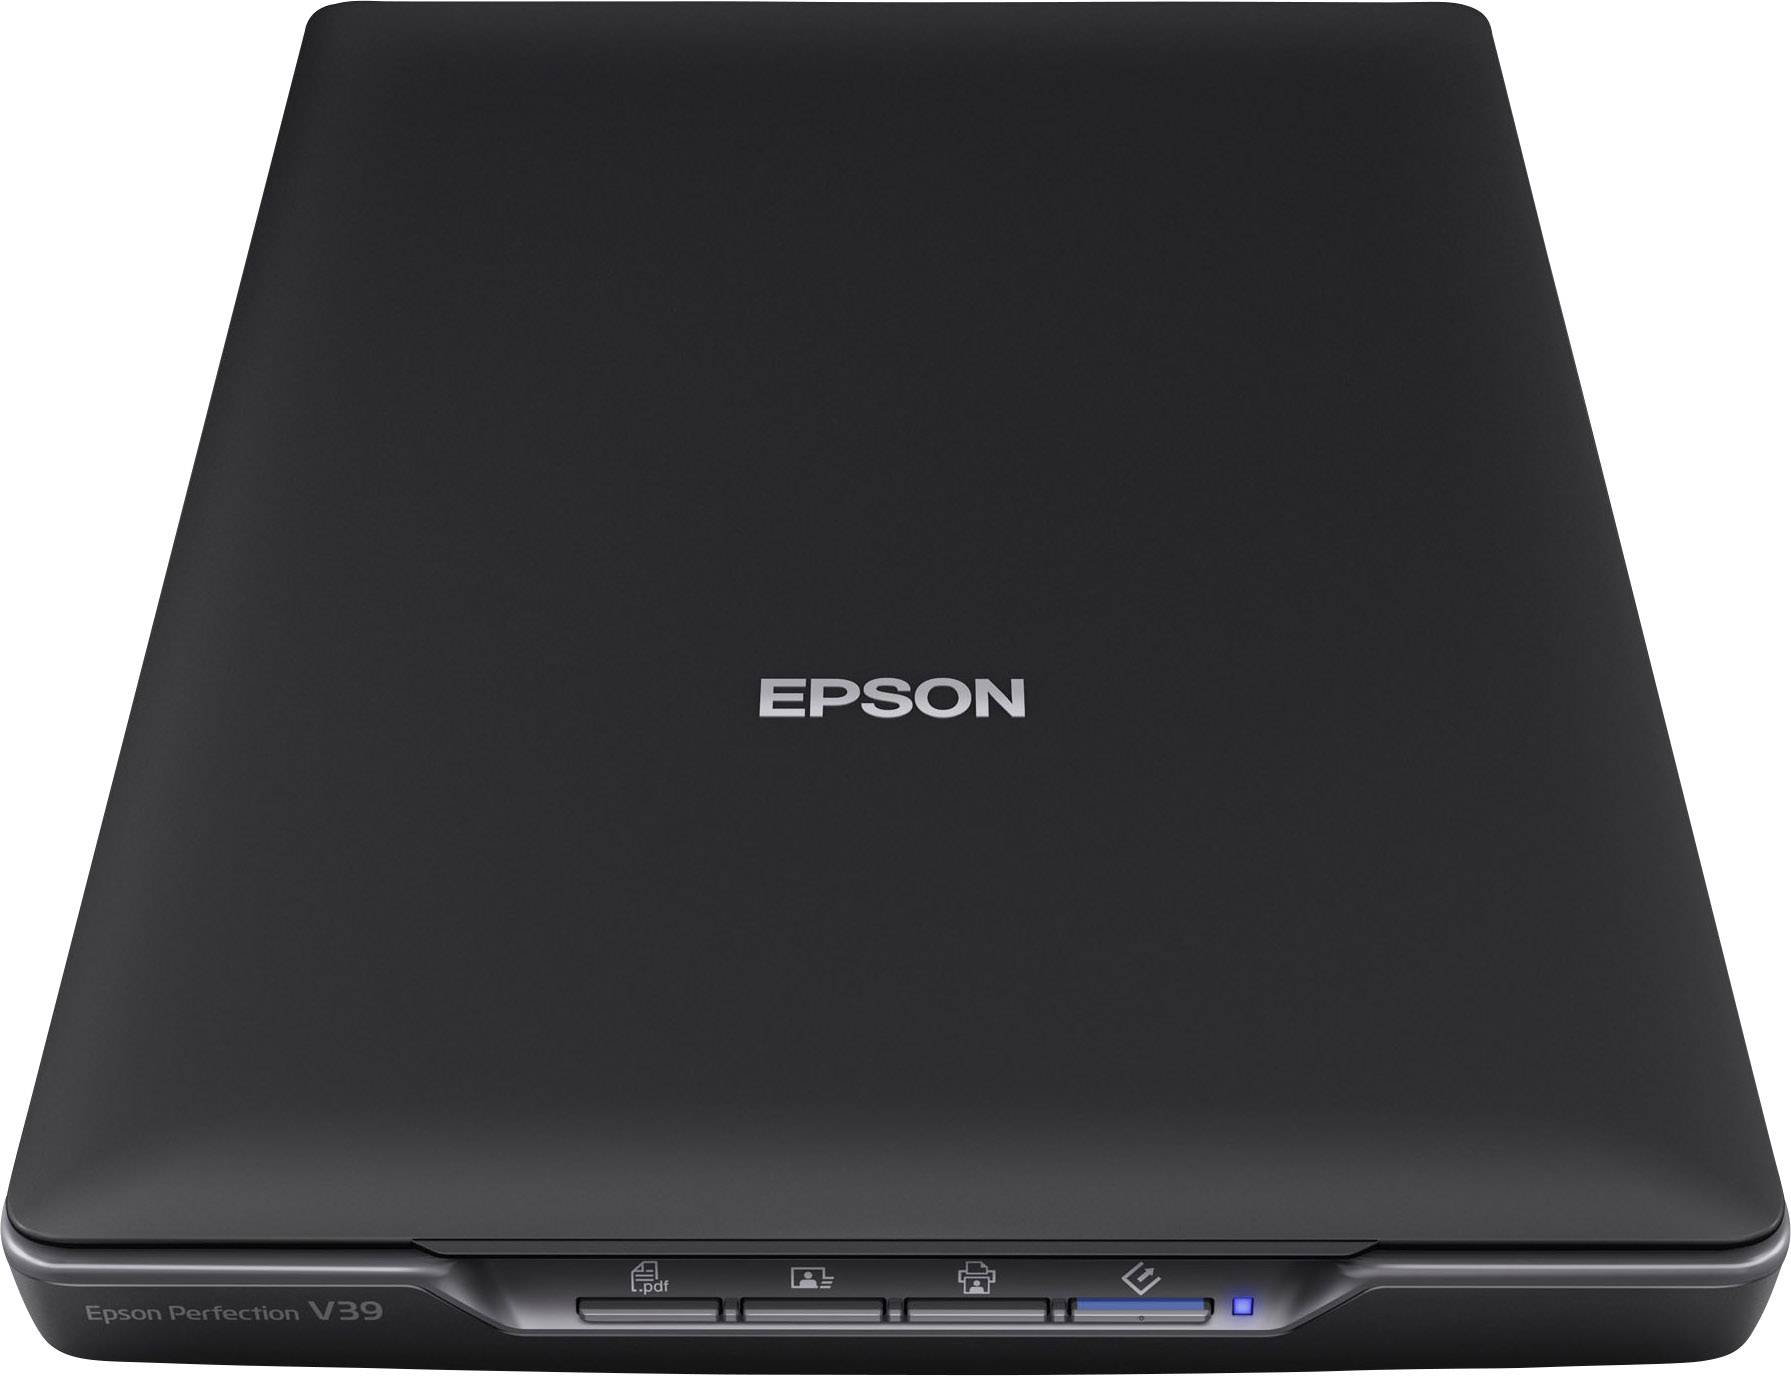 Epson Perfection V39 Color Photo and Document Scanner 4800 optical resolution